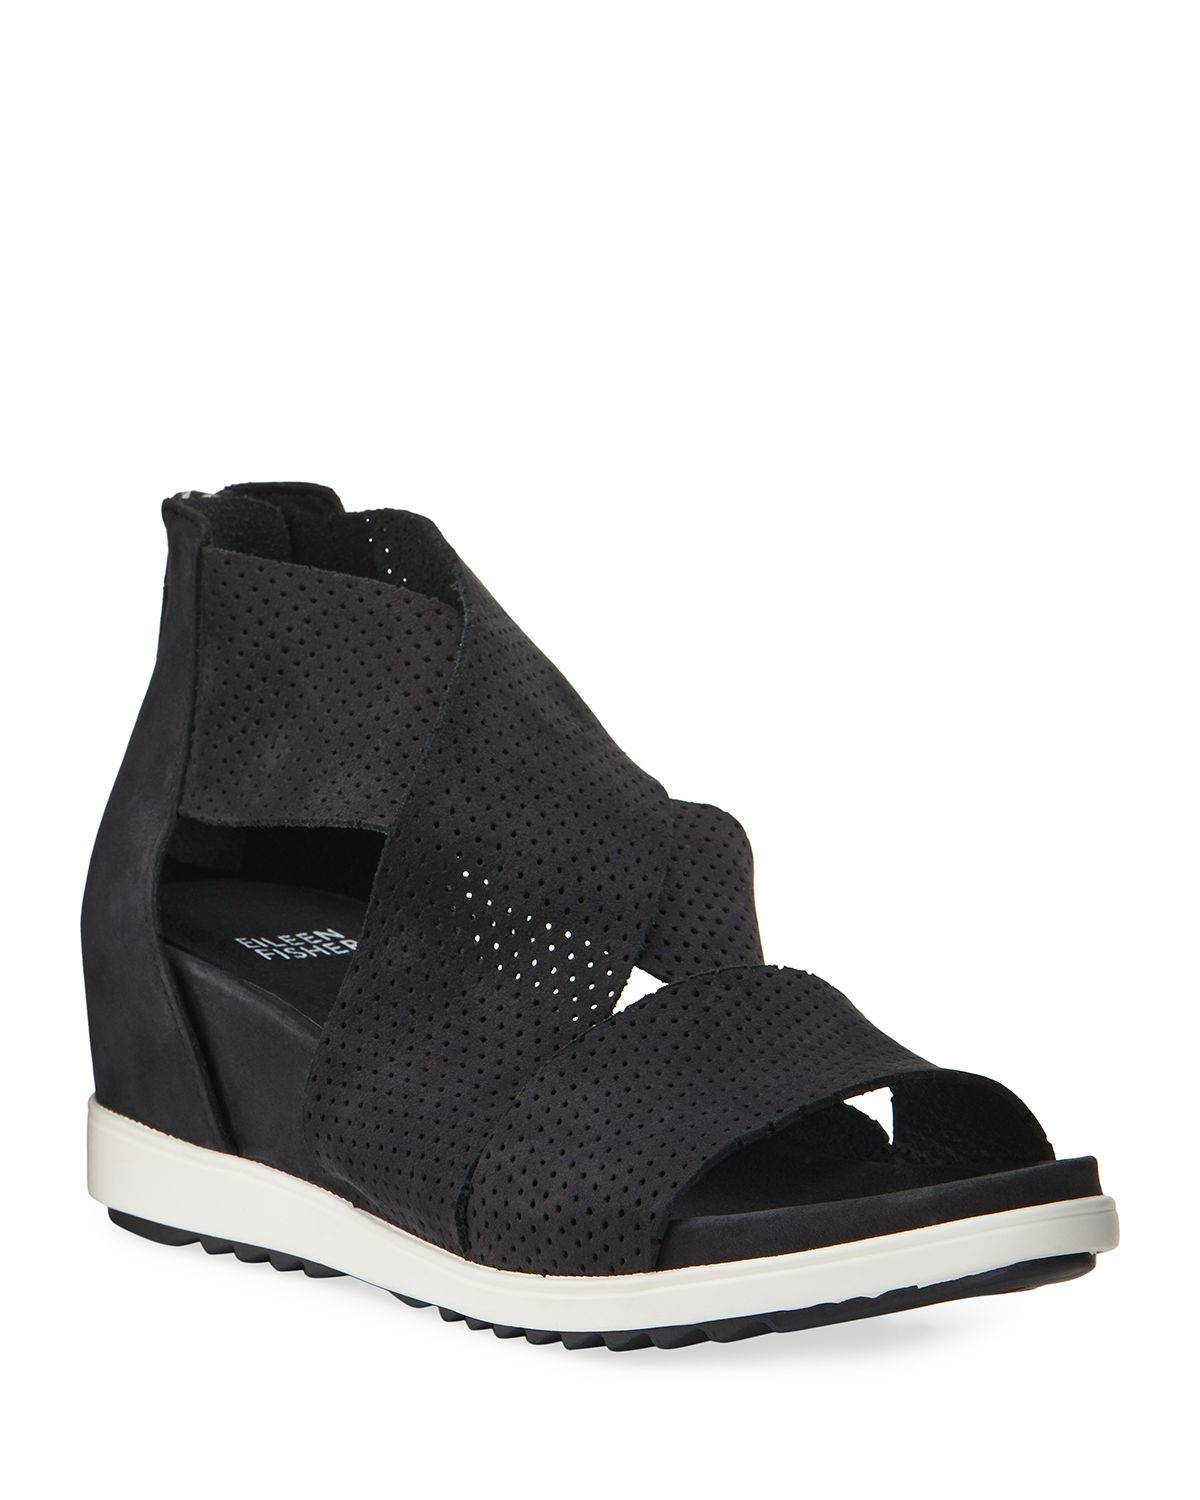 Eileen Fisher Voice Perforated Demi-Wedge Sport Sandals - Size: 9.5B / 39.5EU